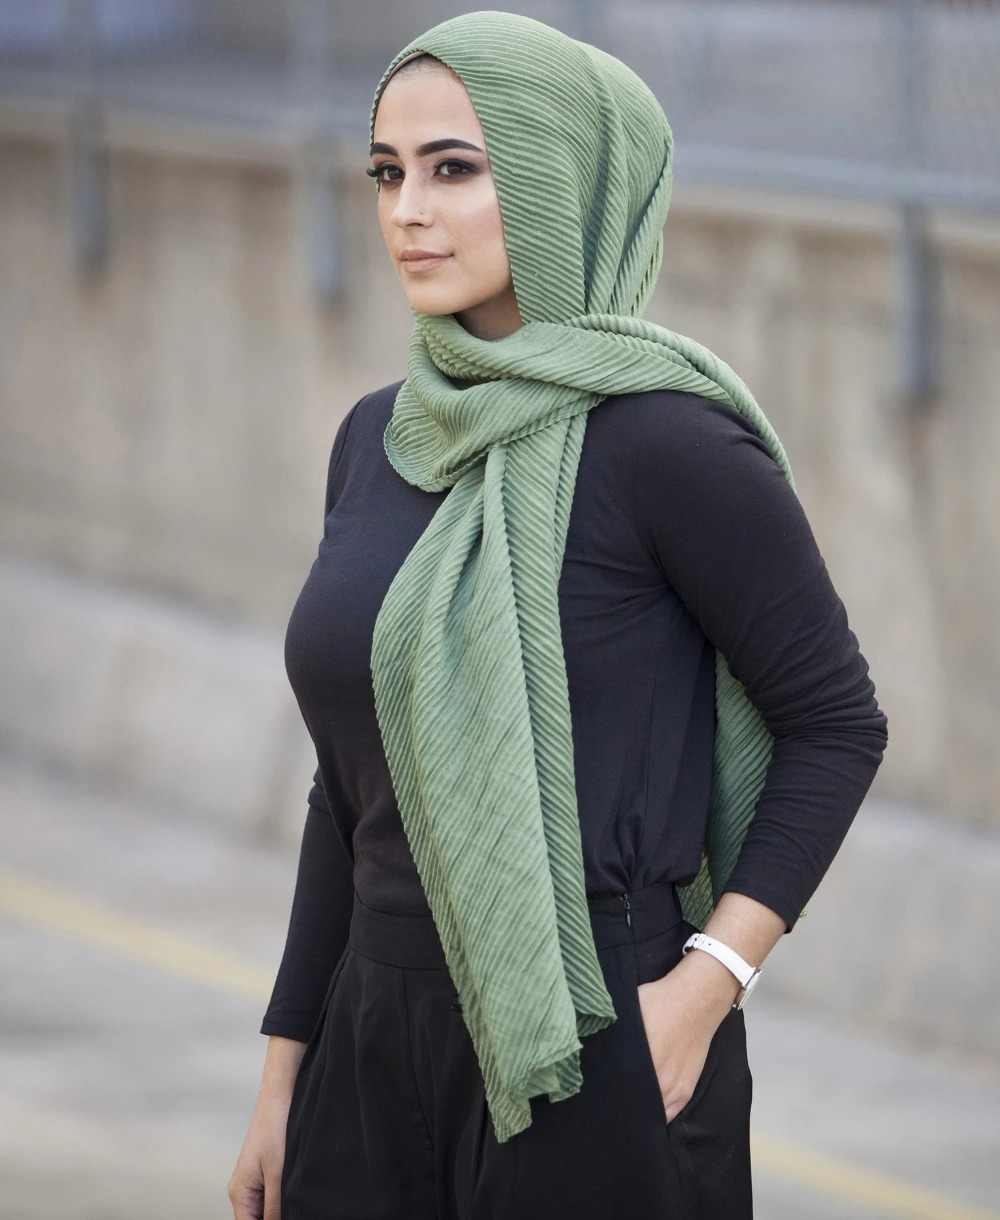 verona-hijab-viscose-cotton-ridge-grassy-green_2000x (1)_wps图片